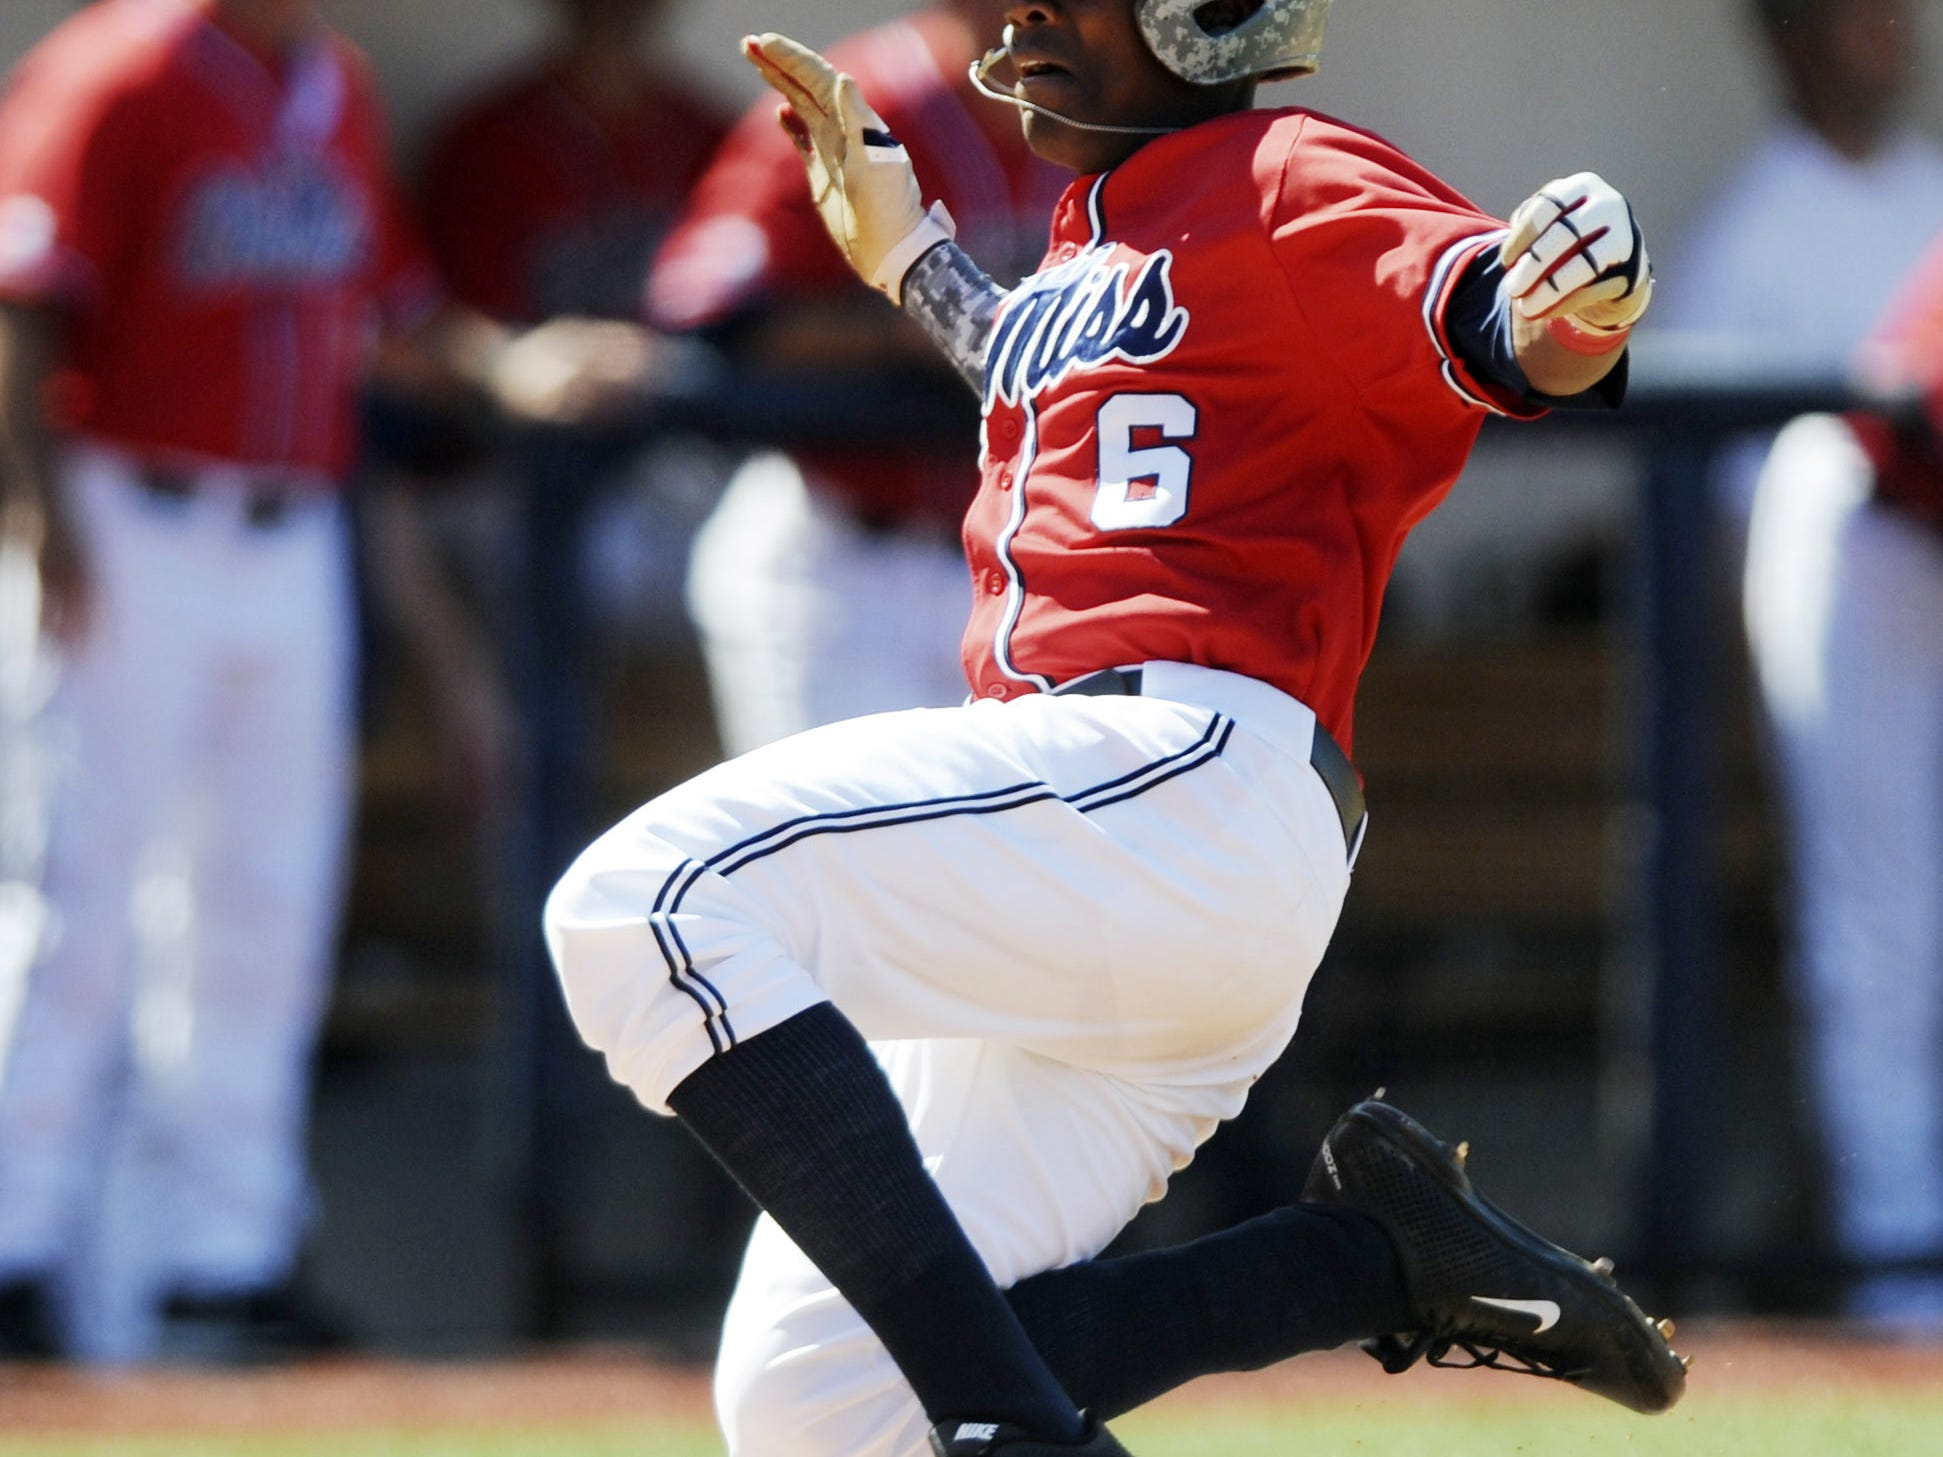 Ole Miss? Errol Robinson scores against Arkansas on Saturday in Oxford. Bruce Newman/Oxford Eagle Mississippi's Errol Robinson (6) scores against Arkansas in an NCAA college baseball game at Oxford-University Stadium in Oxford, Miss., on Saturday, May 3, 2014. (AP Photo/Oxford Eagle, Bruce Newman) MAGS OUT, NO SALES, MANDATORY CREDIT